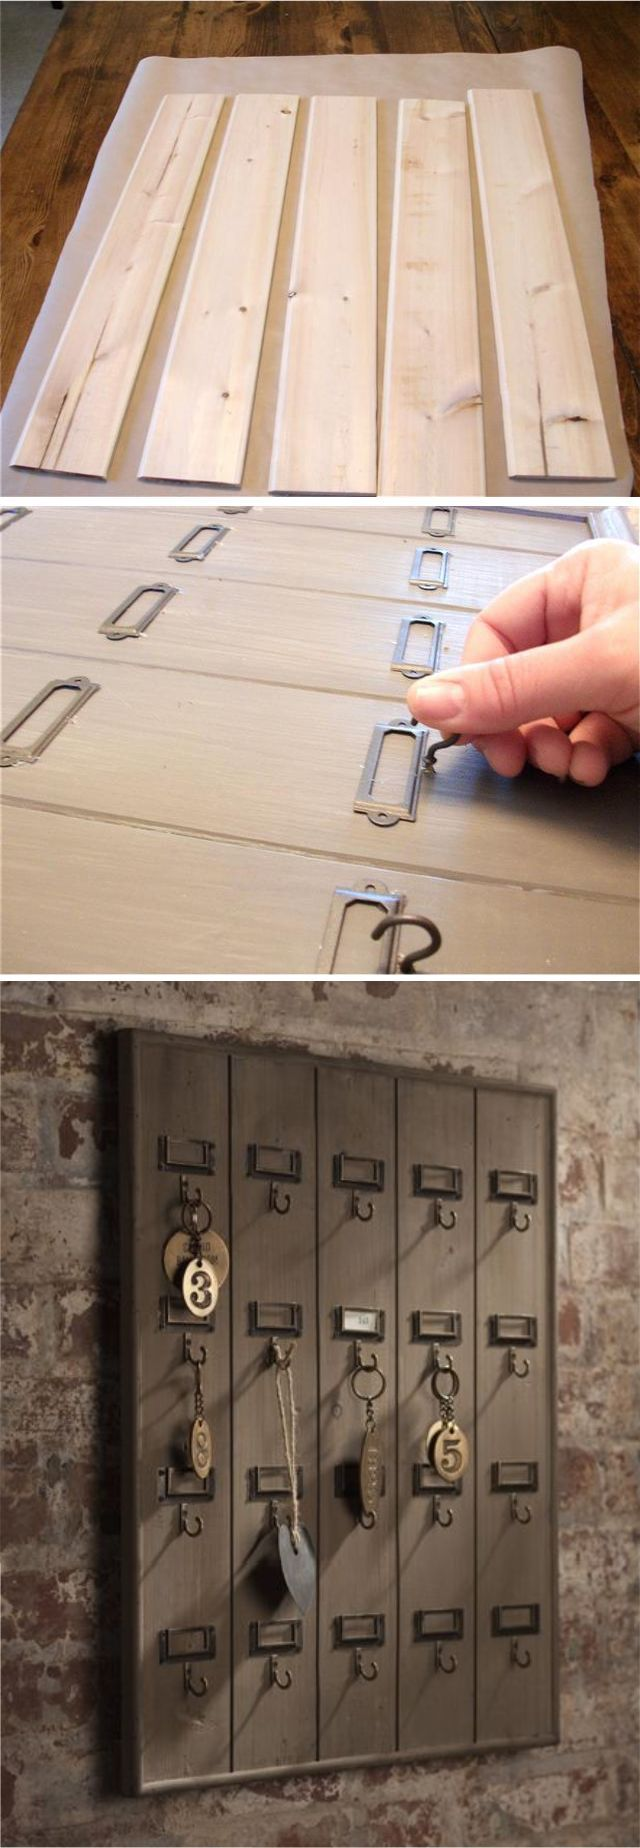 best 25 key hangers ideas on pinterest pet decor gifts for dog